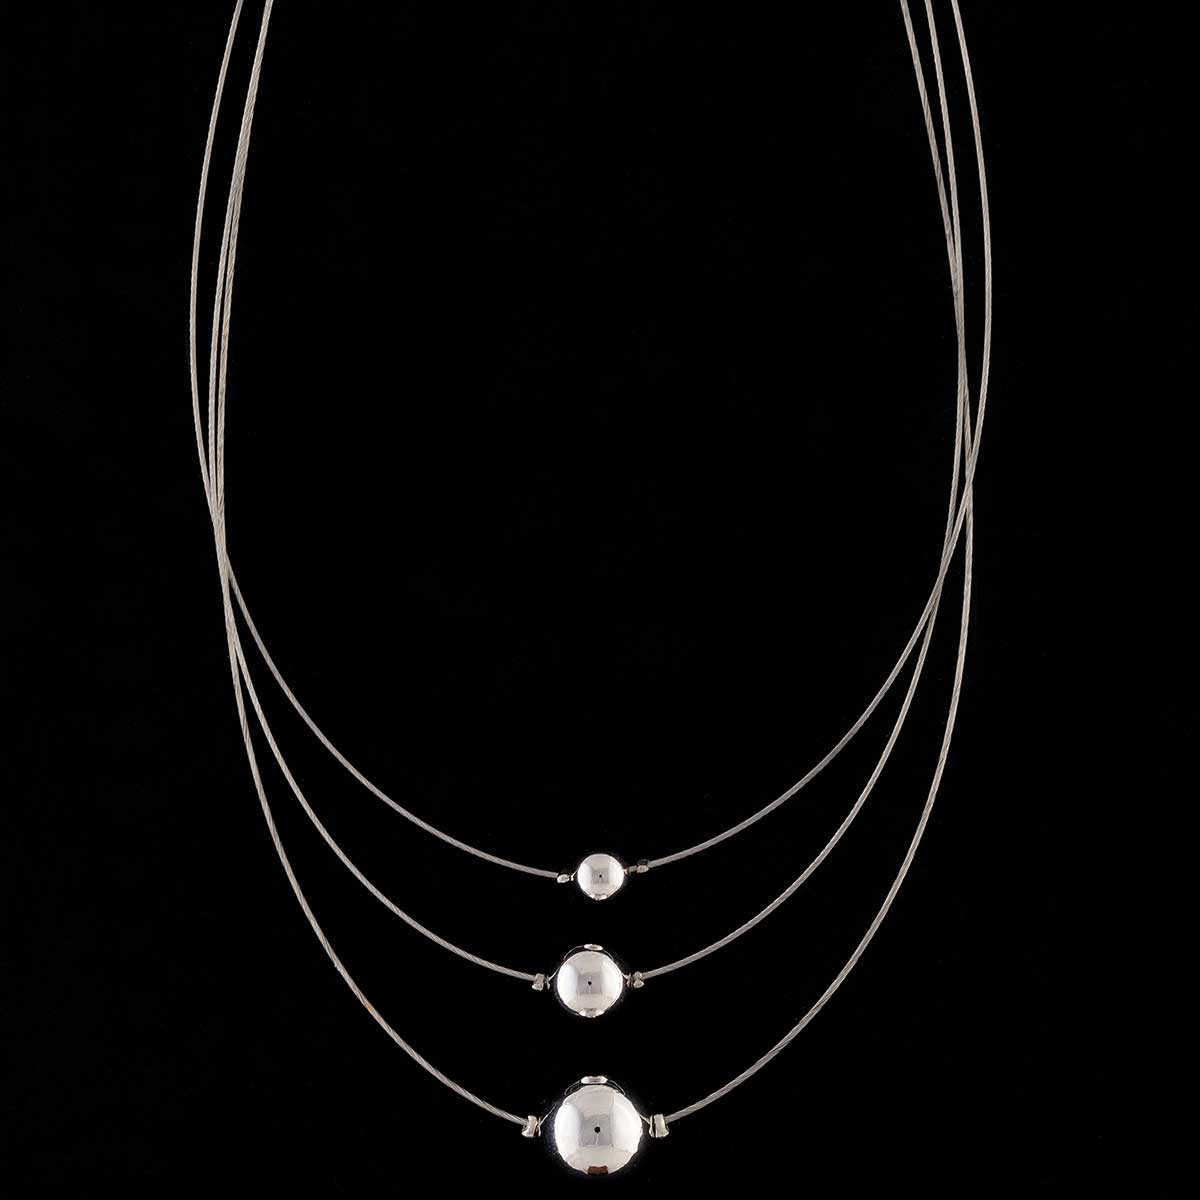 Silver Triple Strand with Beads Necklace on Chain